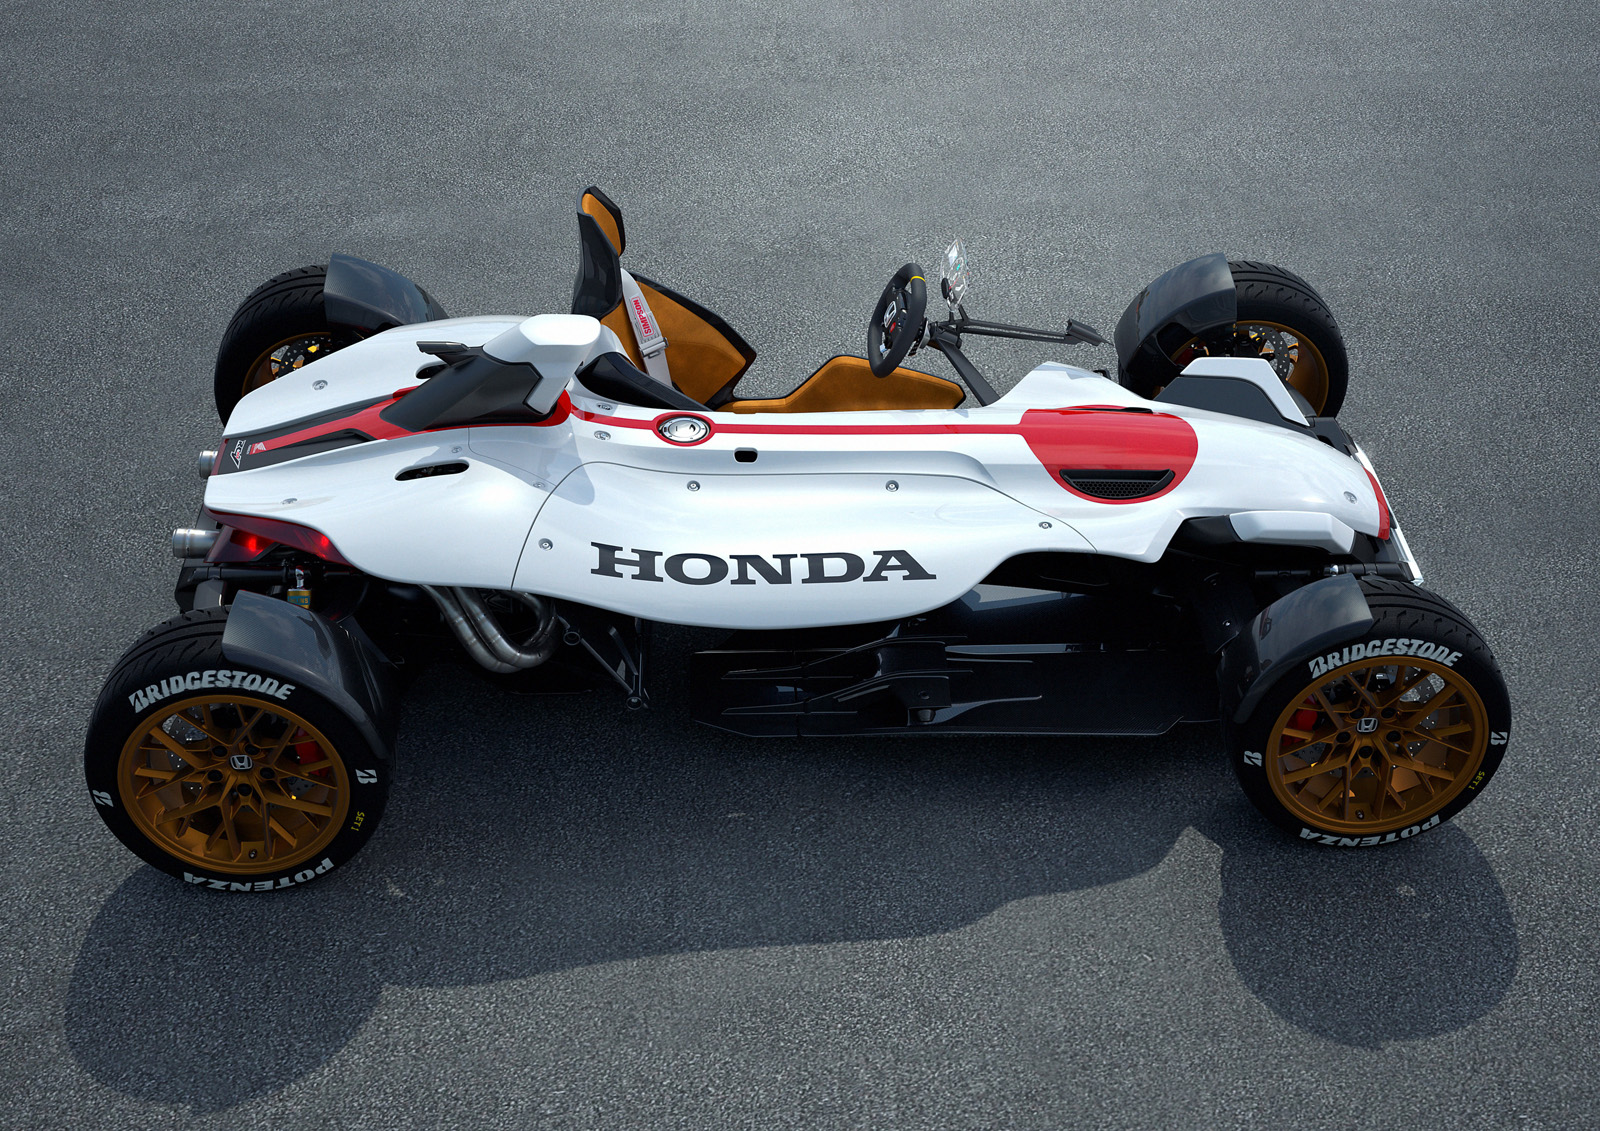 This Wild New Honda Uses A Motorcycle Engine And Revs To 13000 Rpm Project 24 Concept